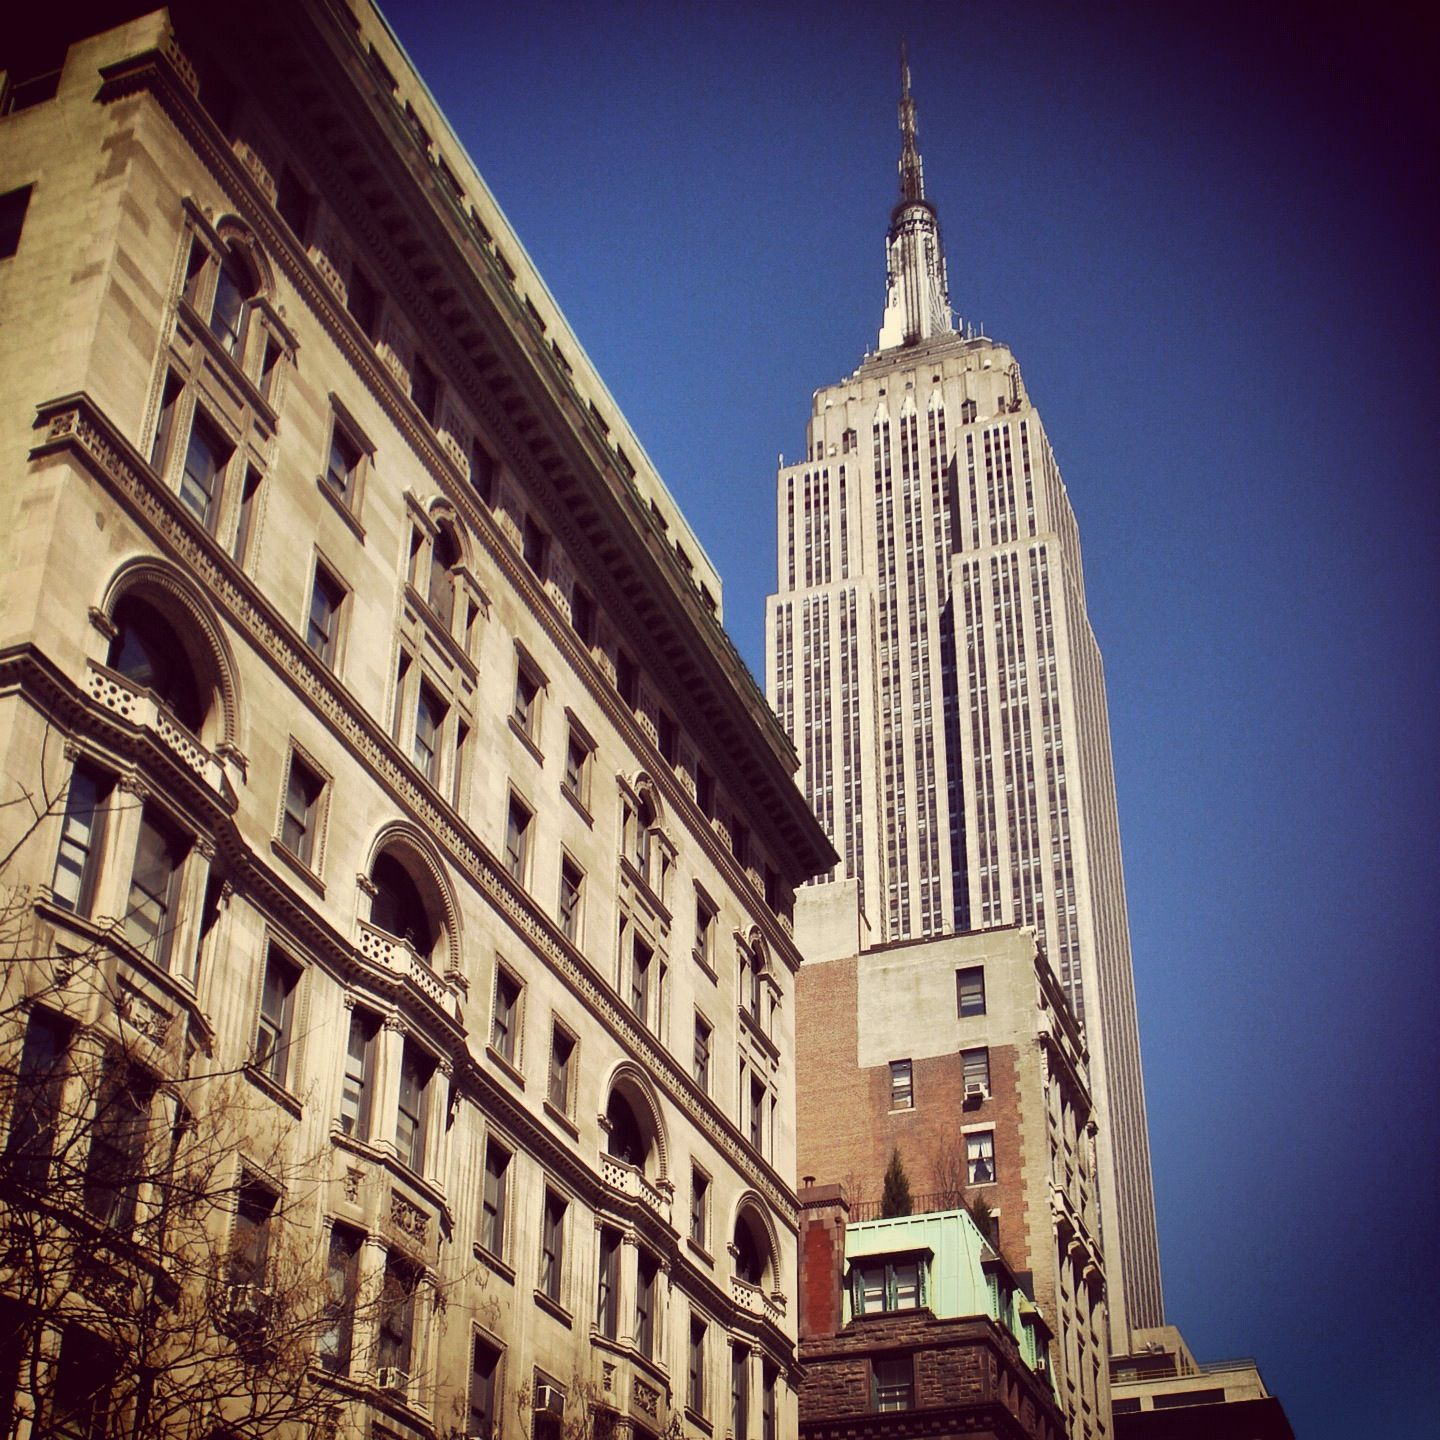 New York. Empire State Building. www.mdxapps.com